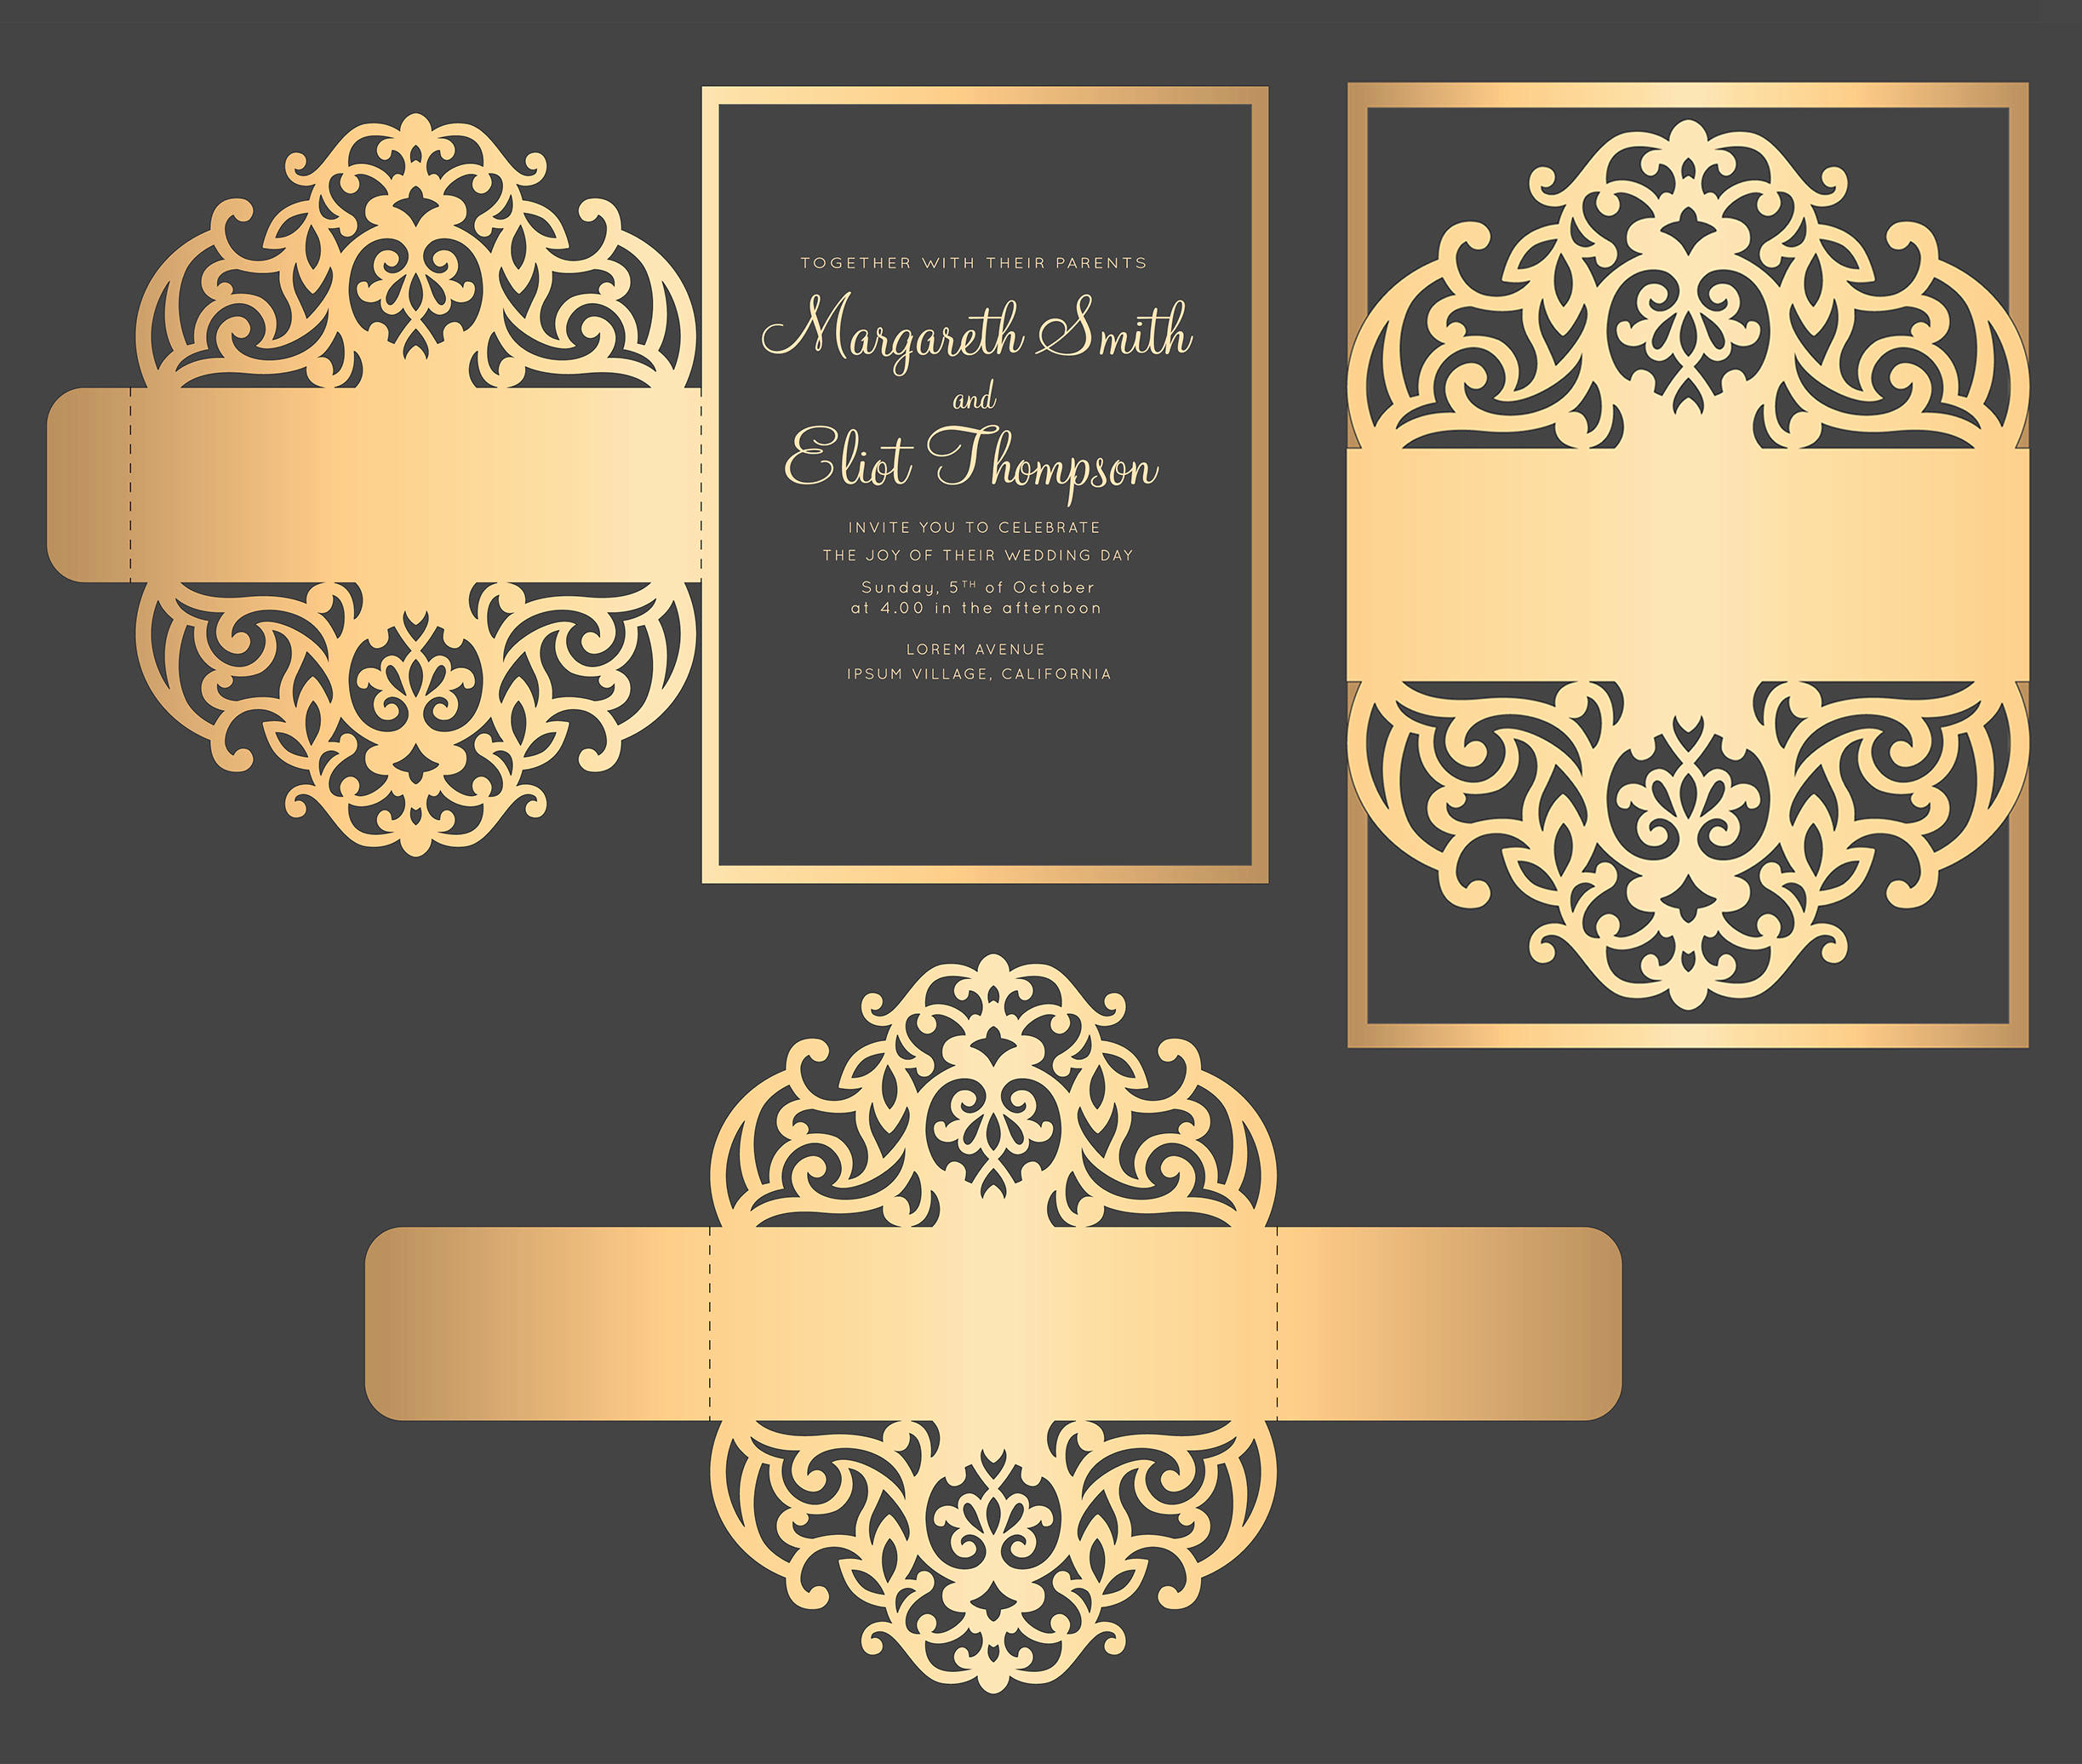 Wedding Invitation Belly Band Template Luxury Svg Dxf Eps Belly Band Wedding Invitation Laser Cut Template